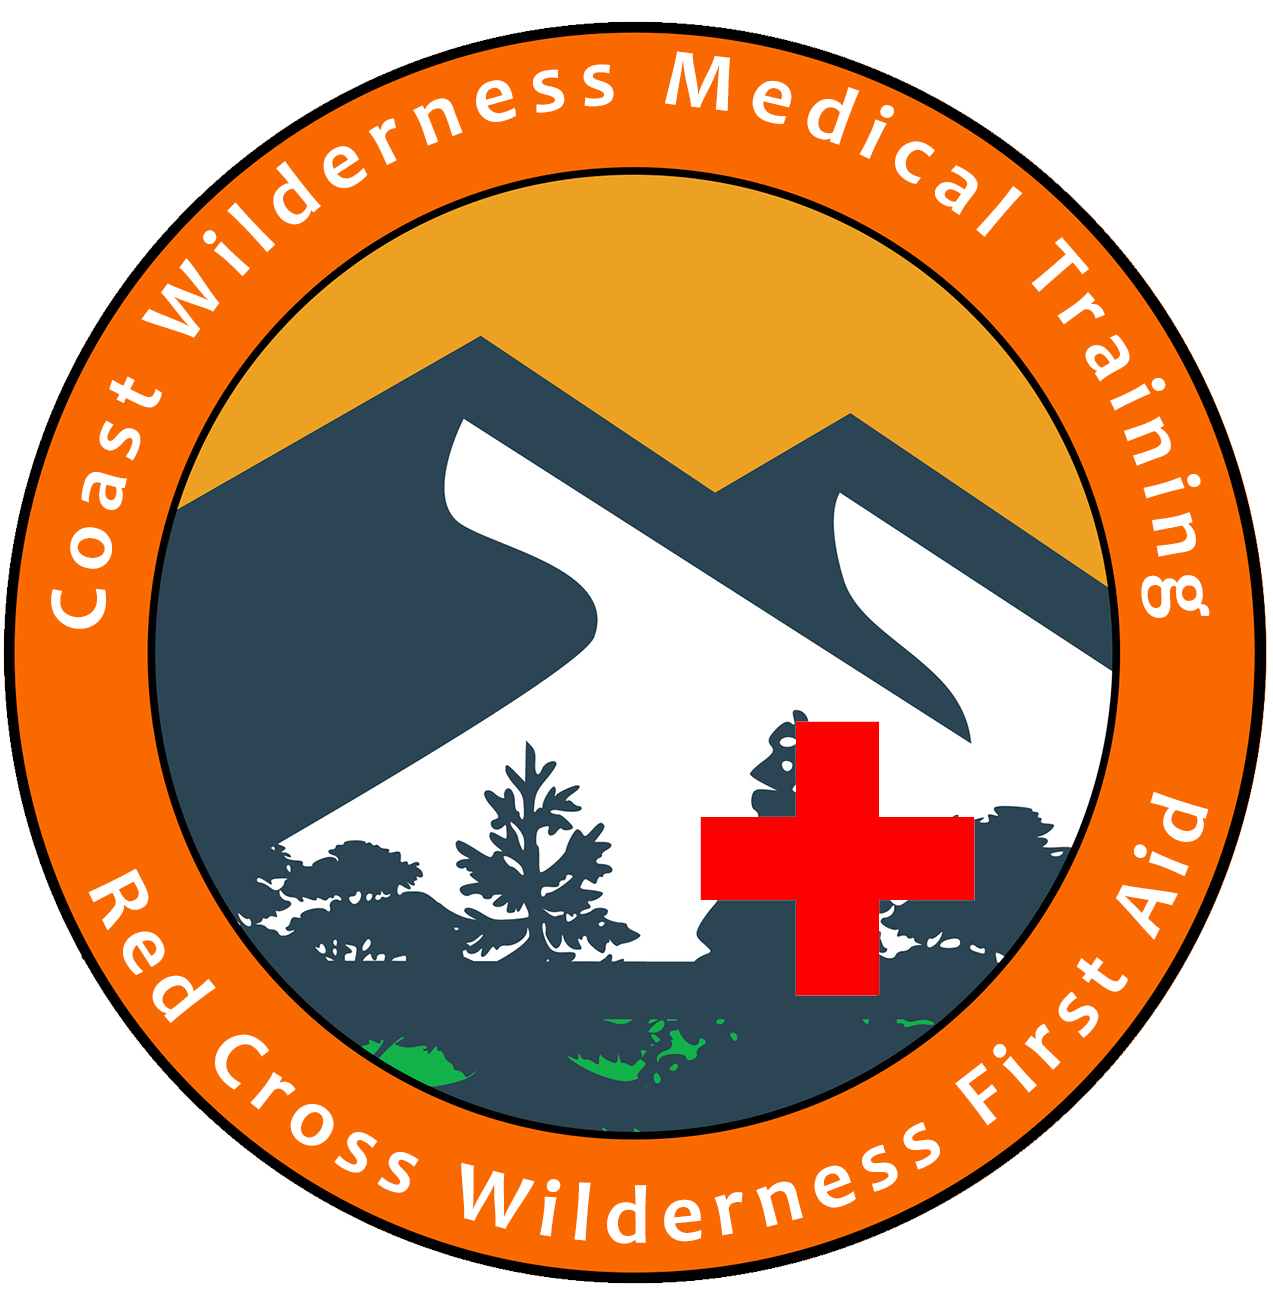 Coast Wilderness Medical Training